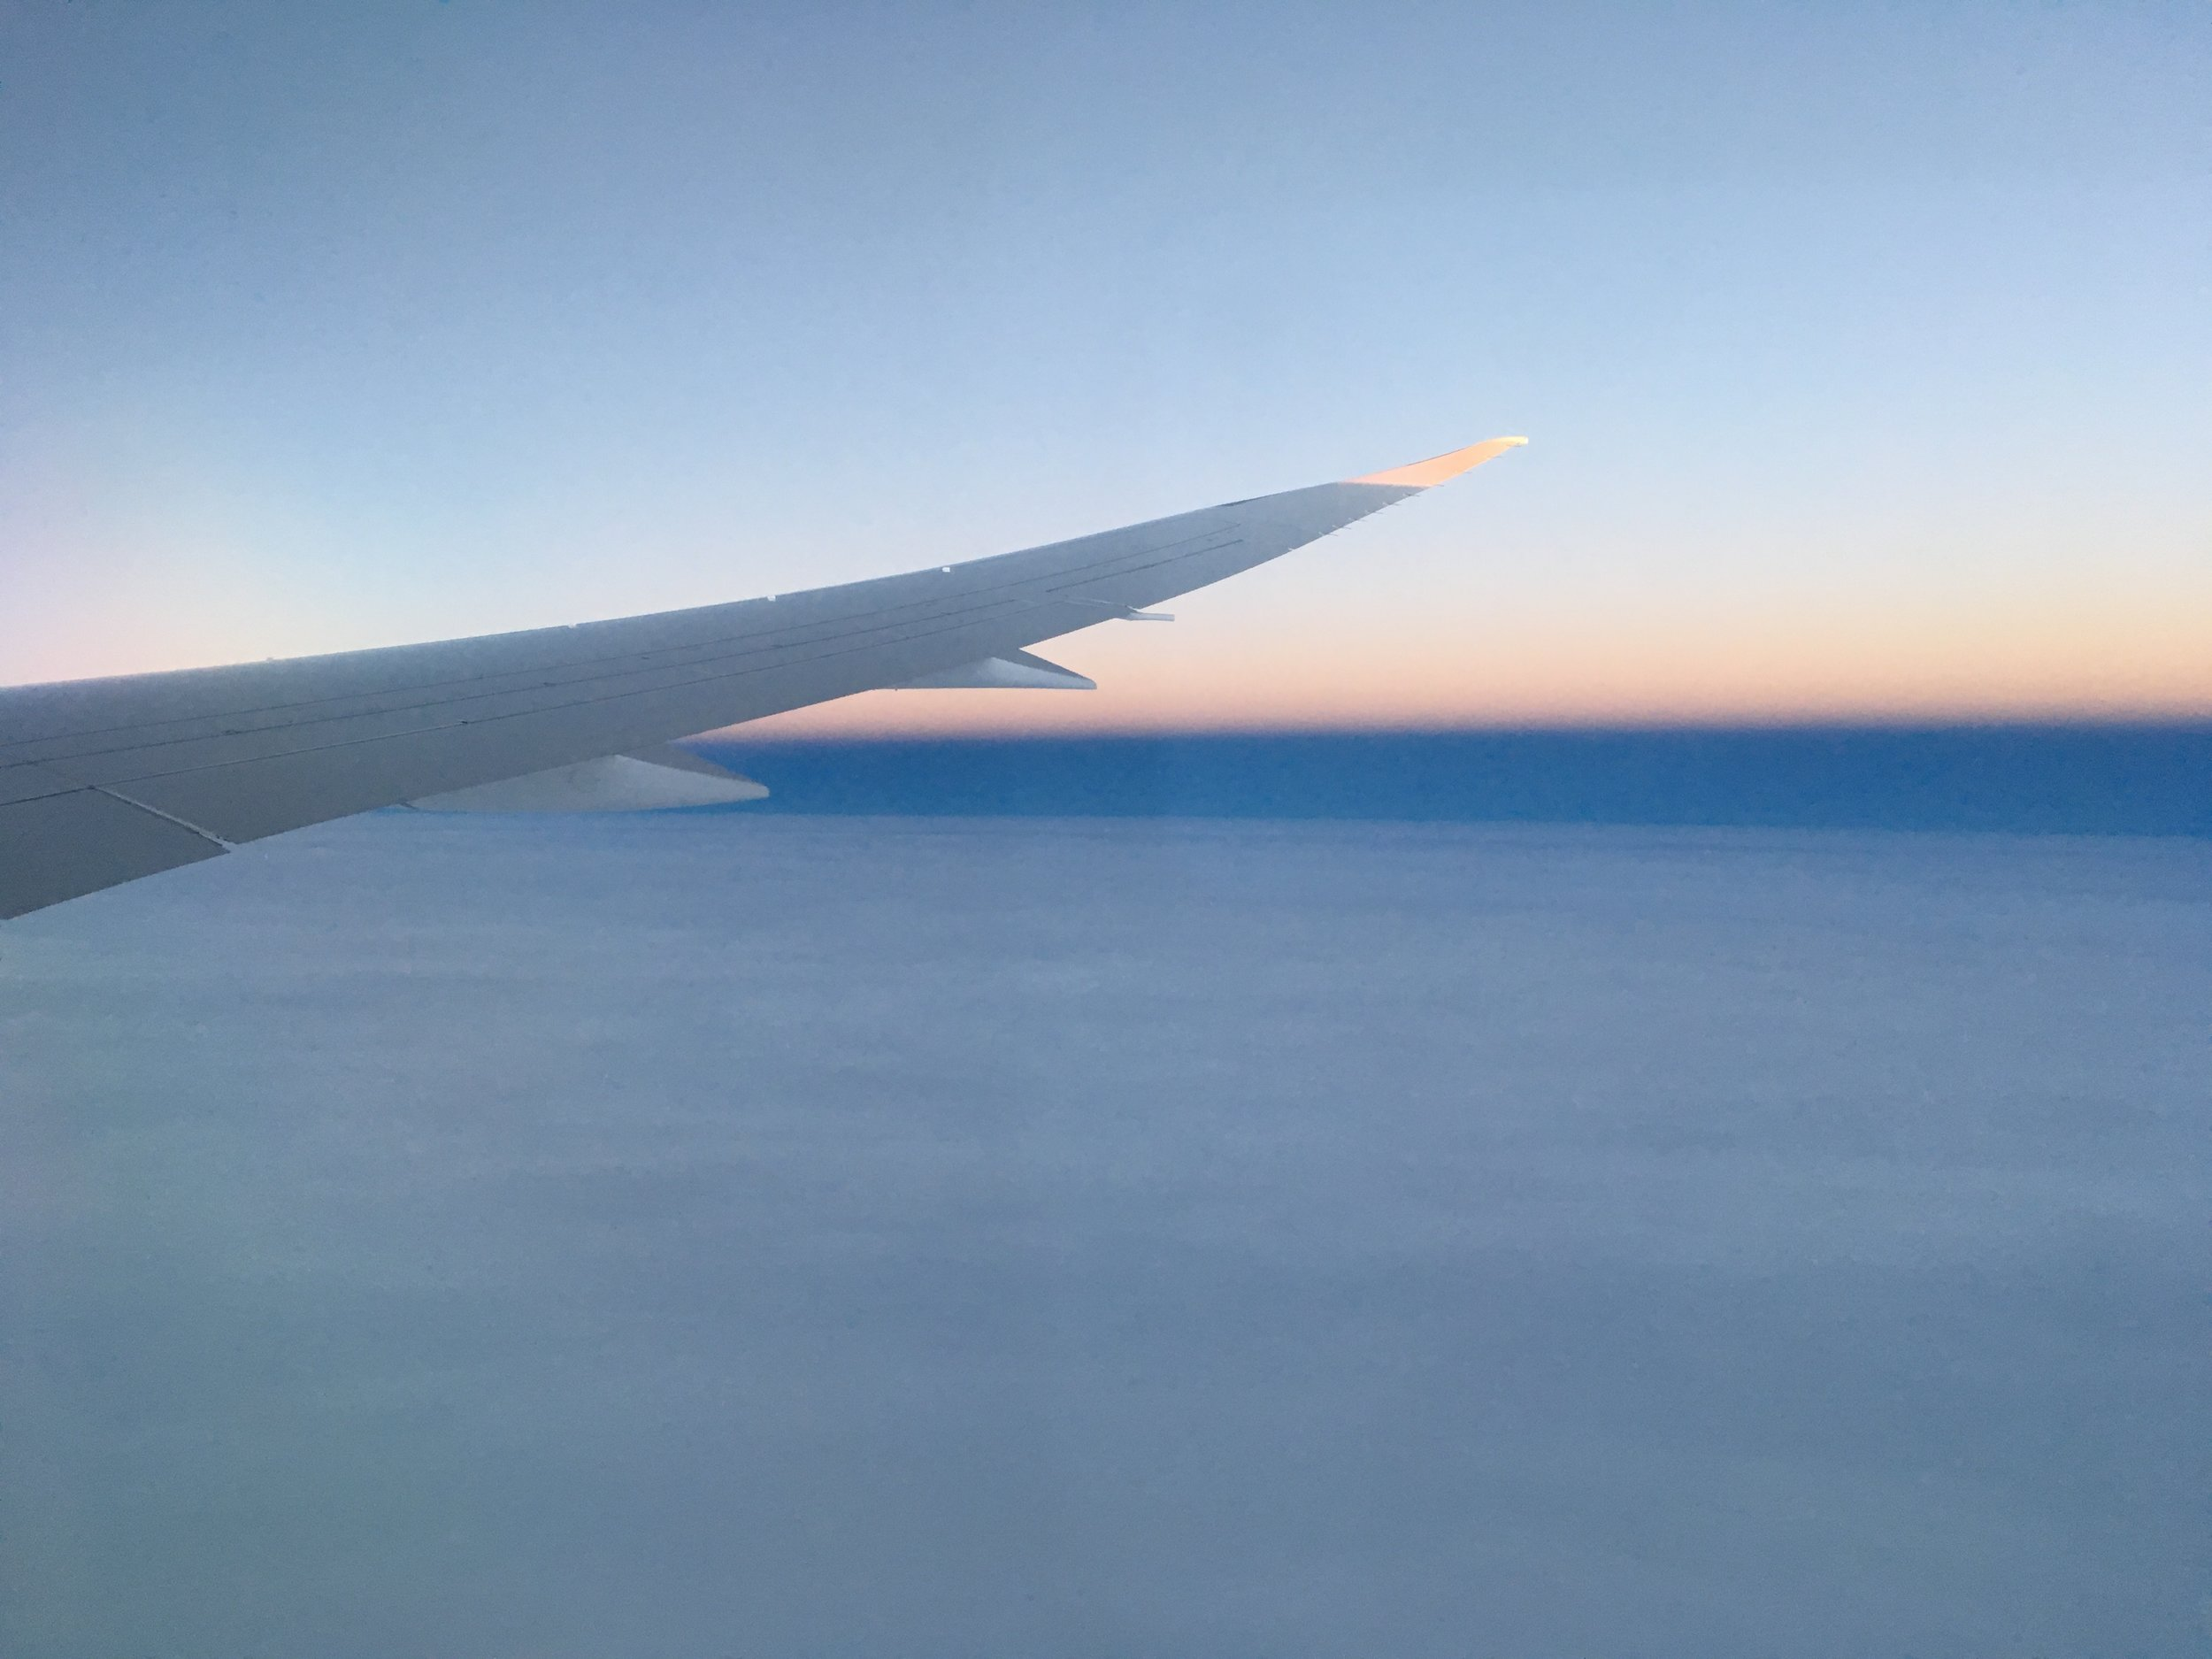 It was sunset for most of the flight back.